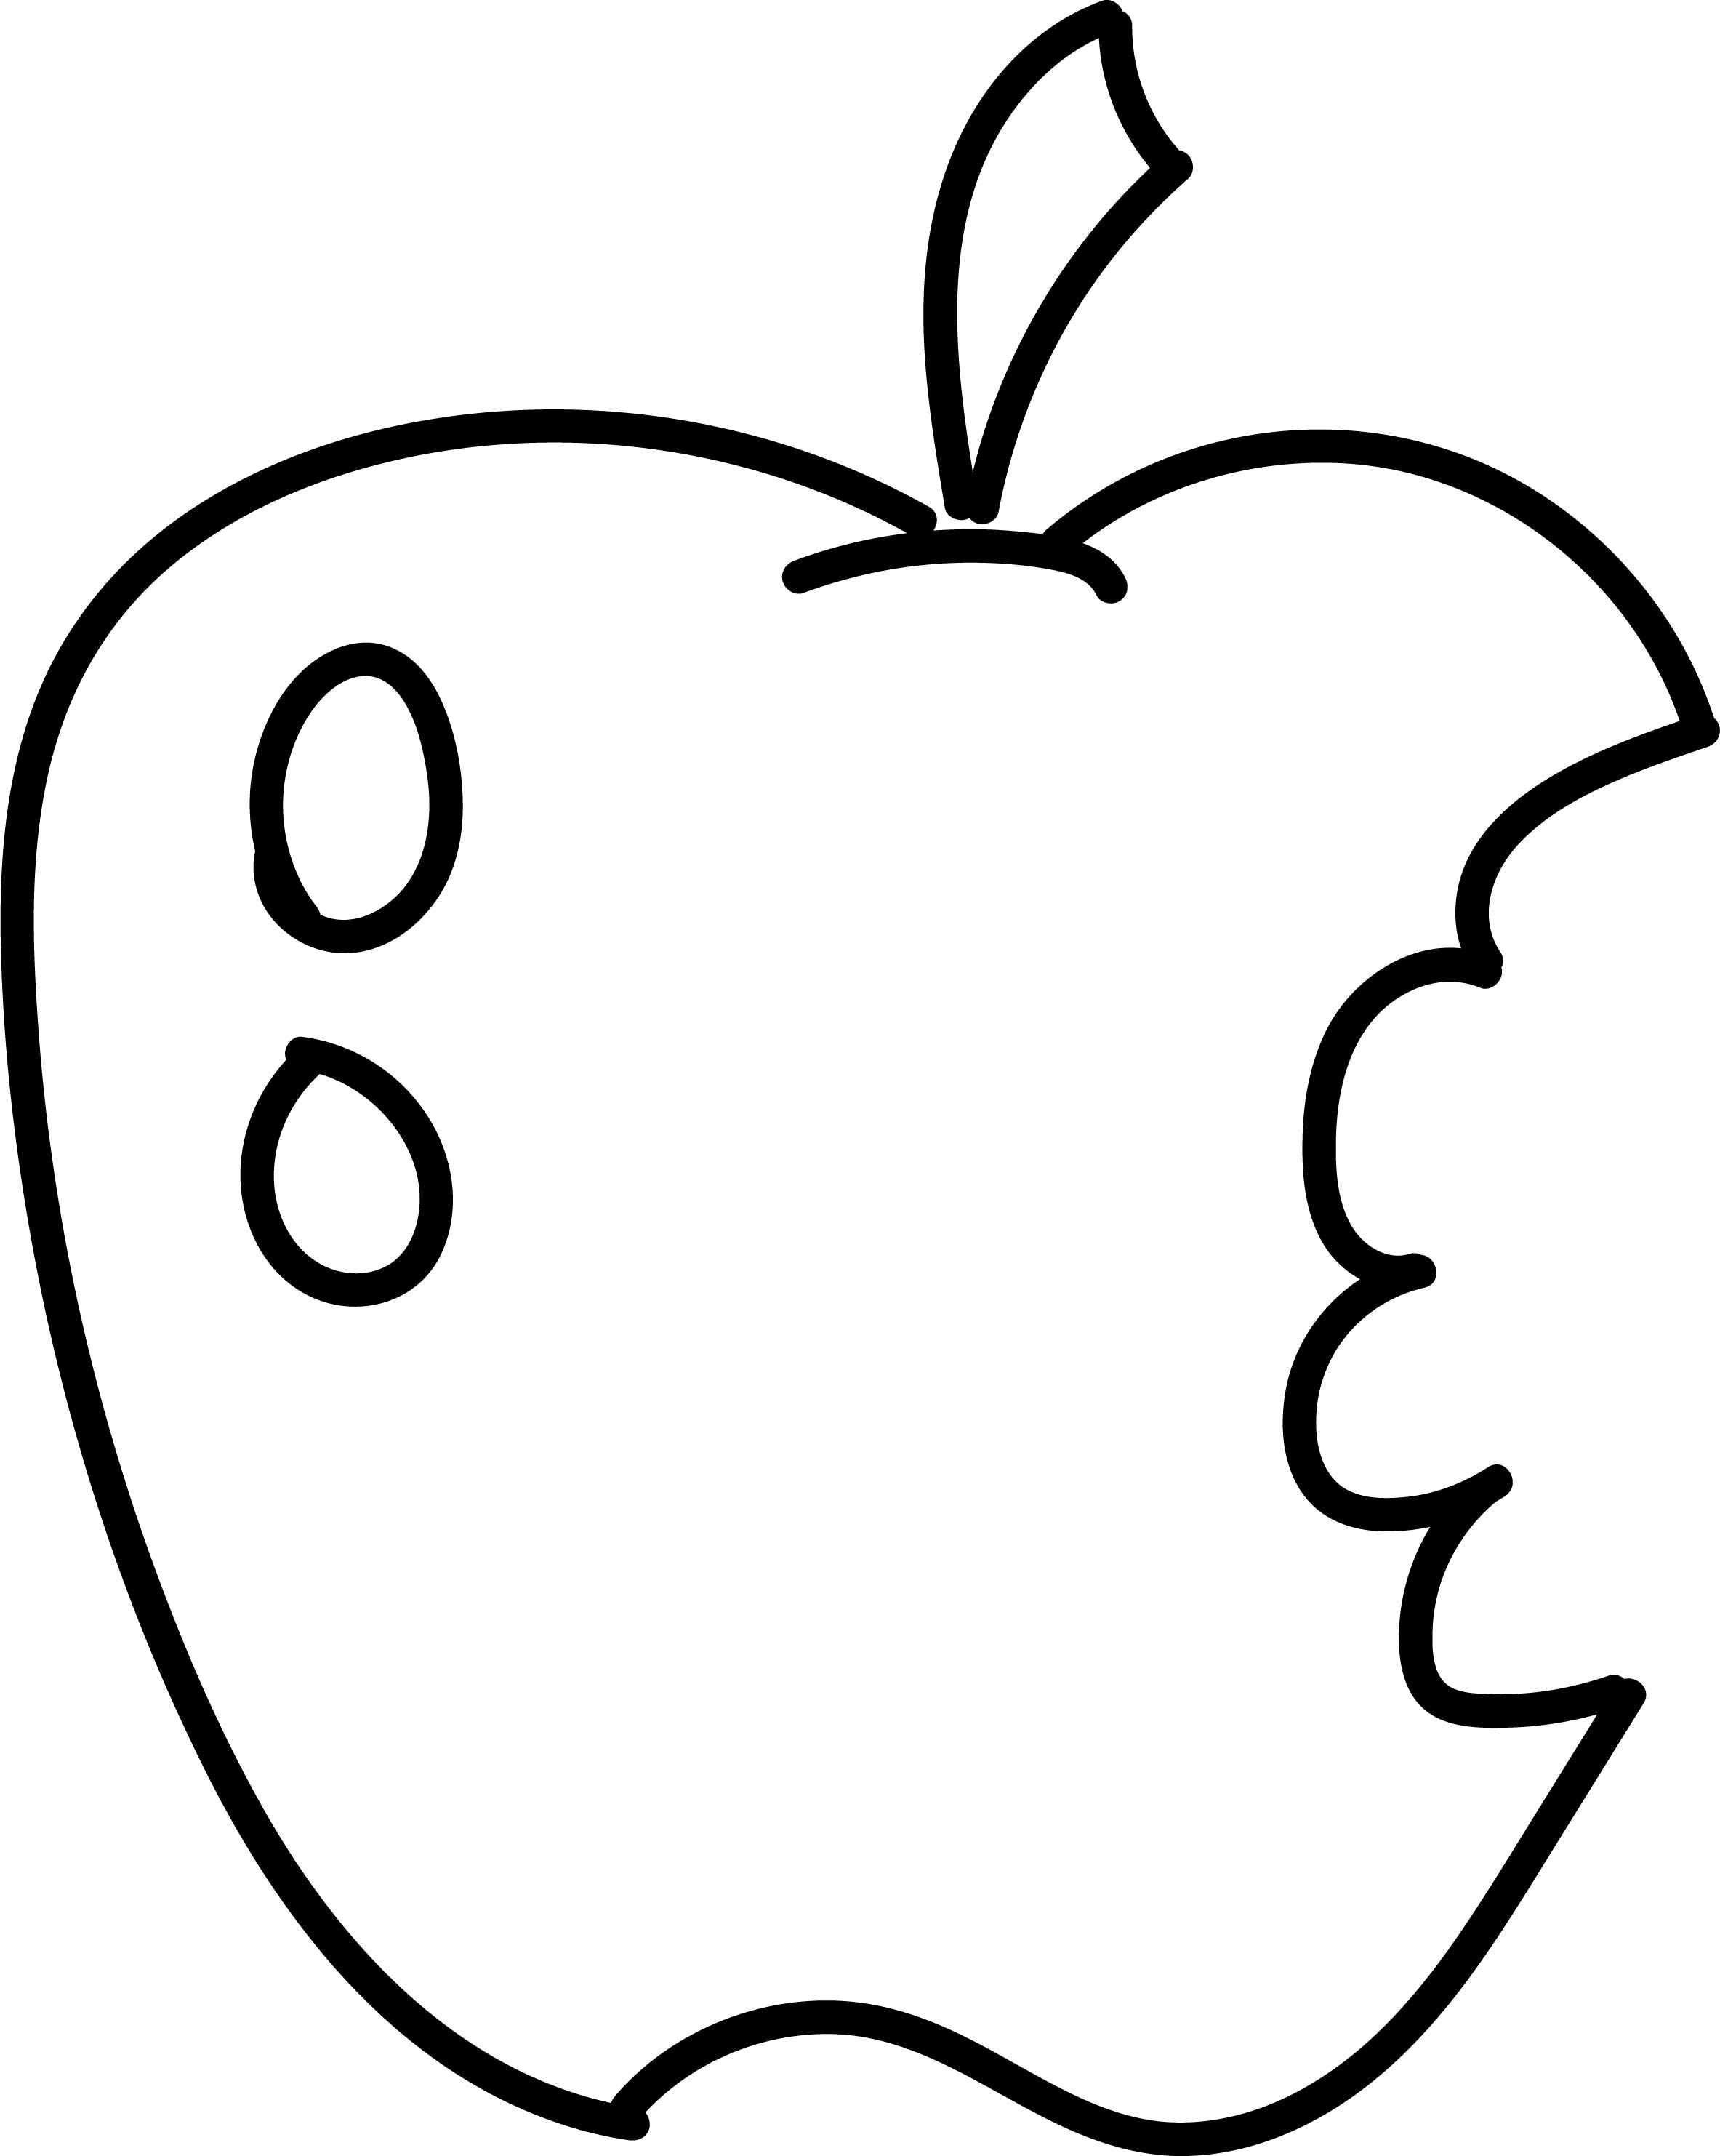 Eating apple coloring page for Apple coloring pages